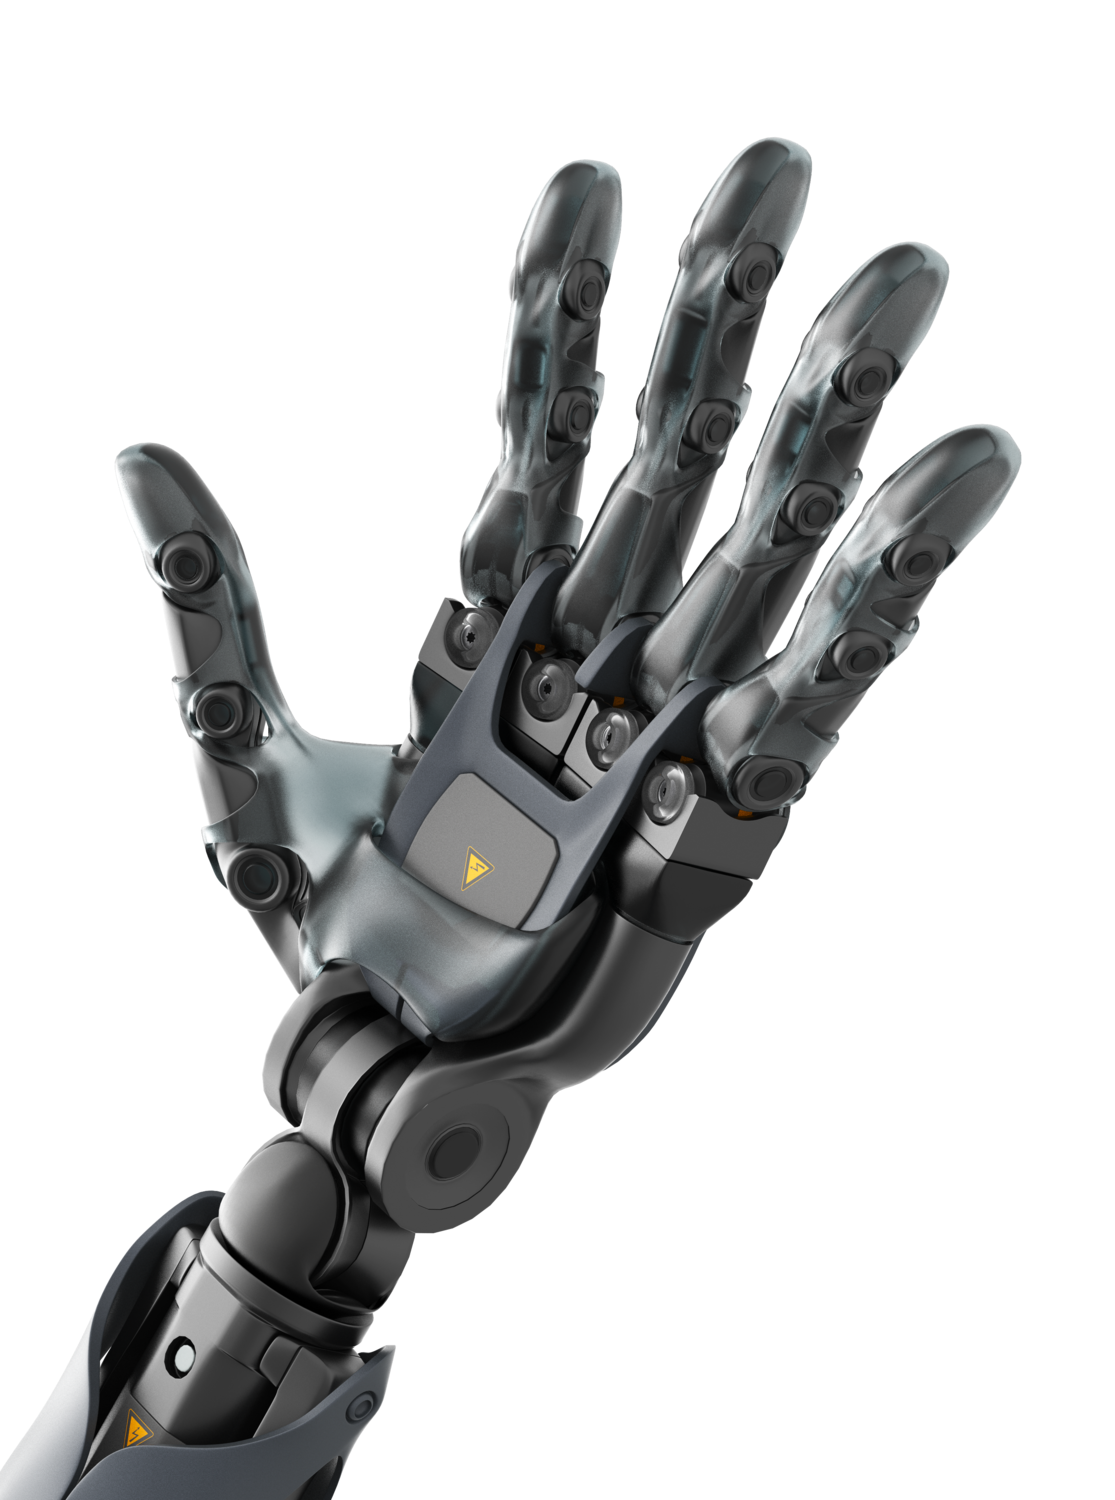 bioelectronics arm bionics prosthetic robotics future advanced arm hand tyr 3 arvid roach prosthetic disability amputation design product